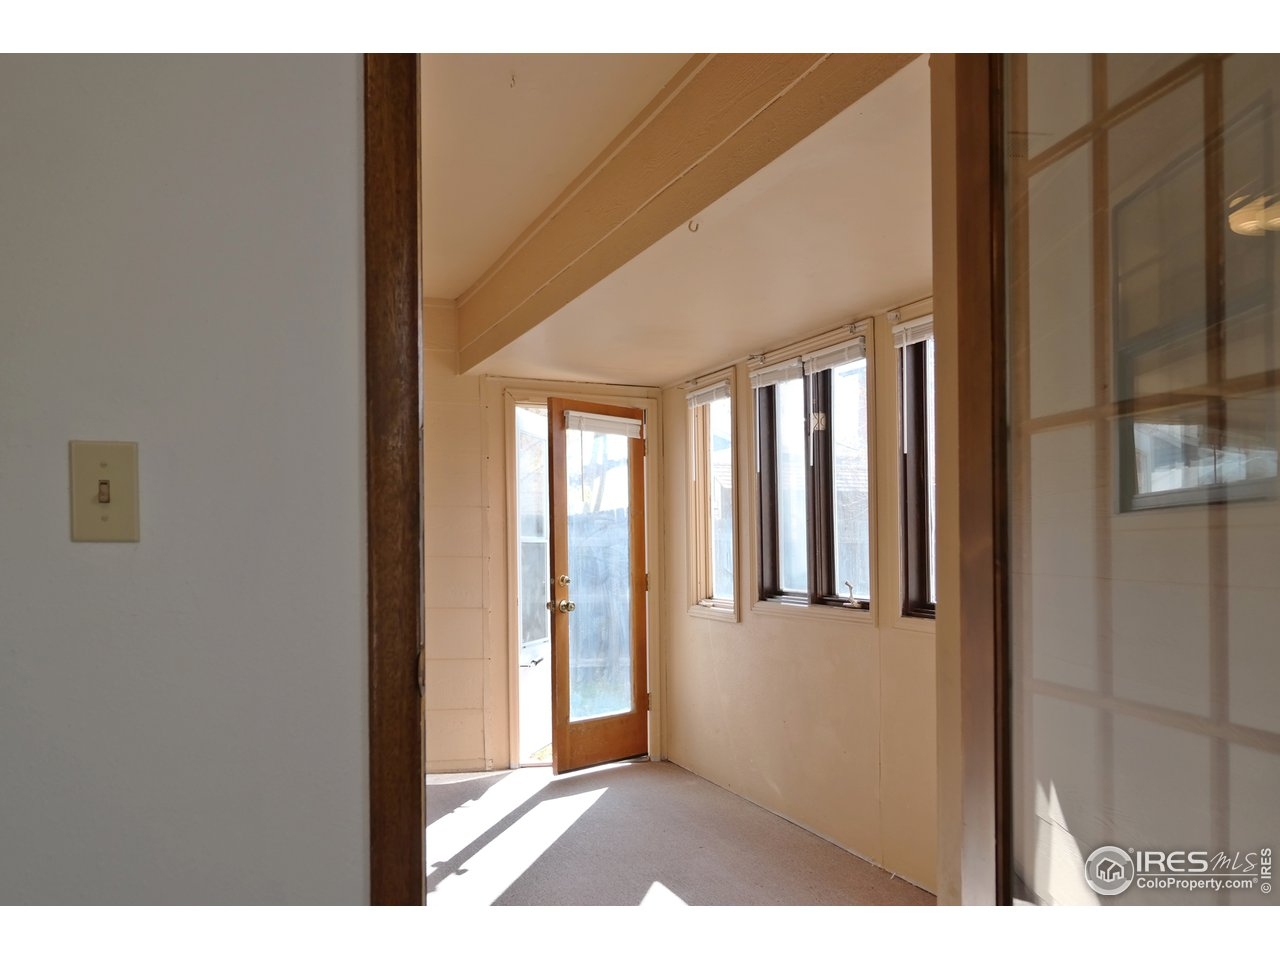 Access to Enclosed Porch from Kitchen & Bedroom